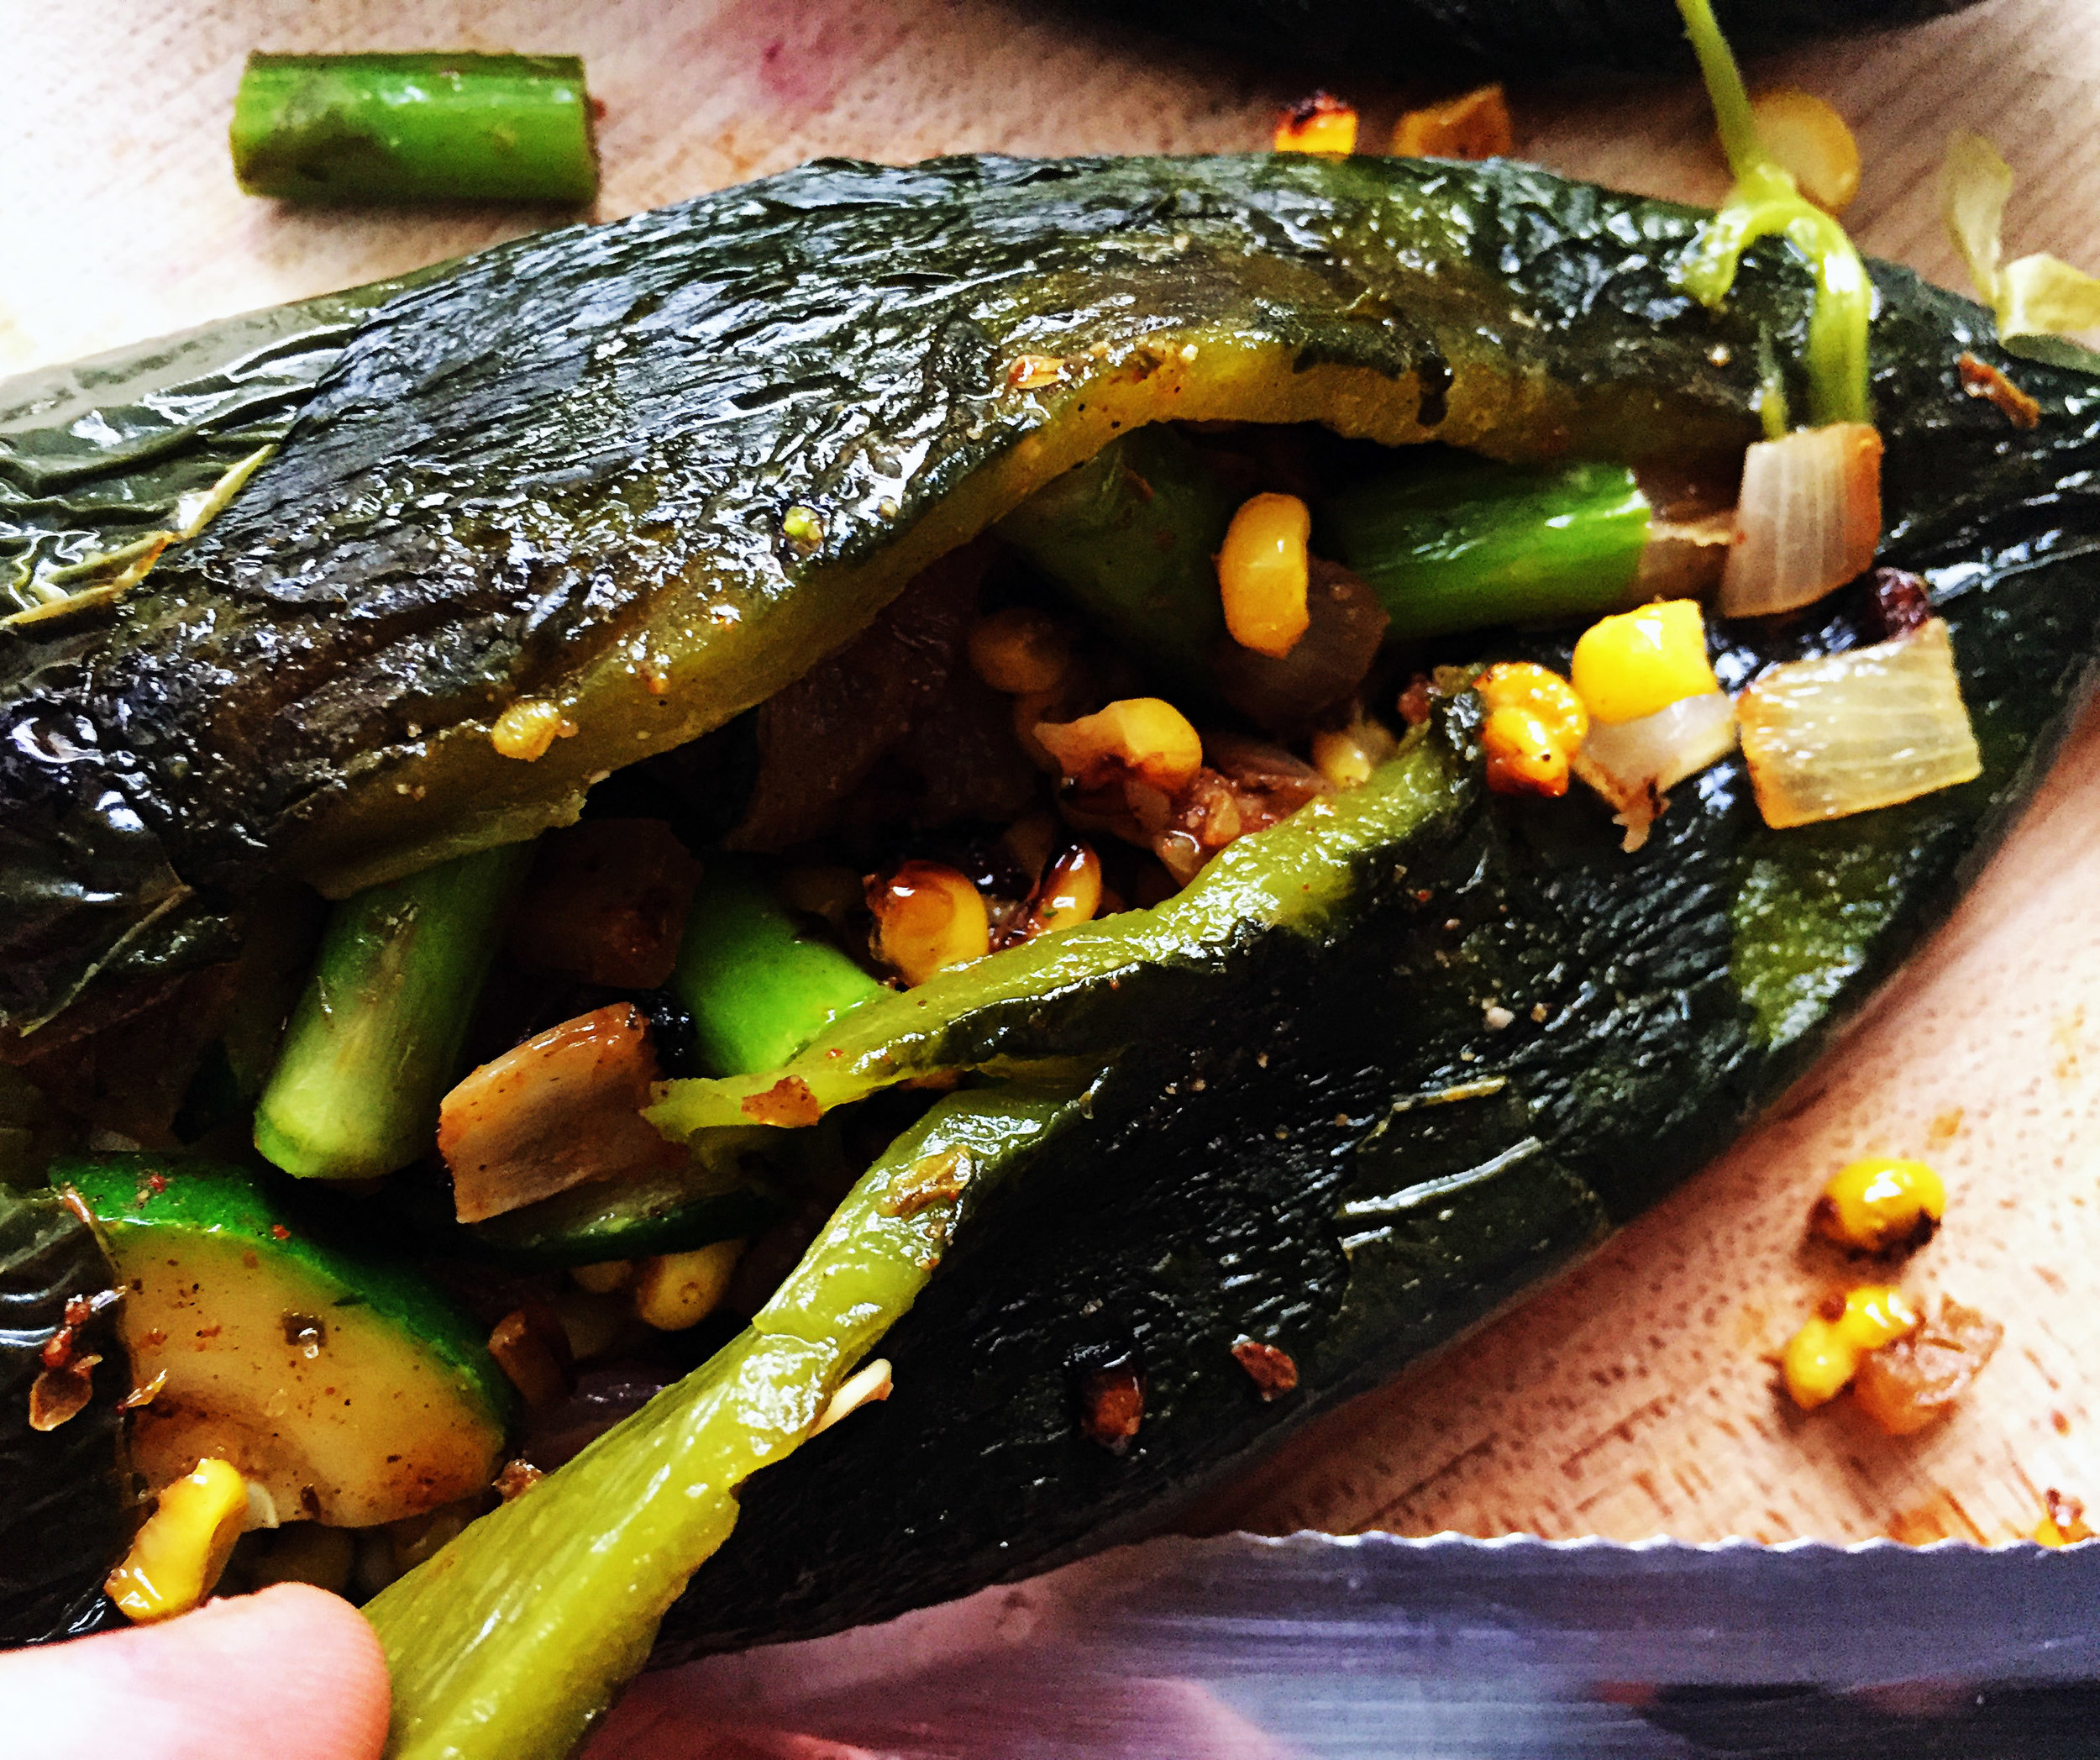 8. Stuff in the lime corn, zuke, asparagus mixture with a spoon. Be careful not to split it too much in the middle.